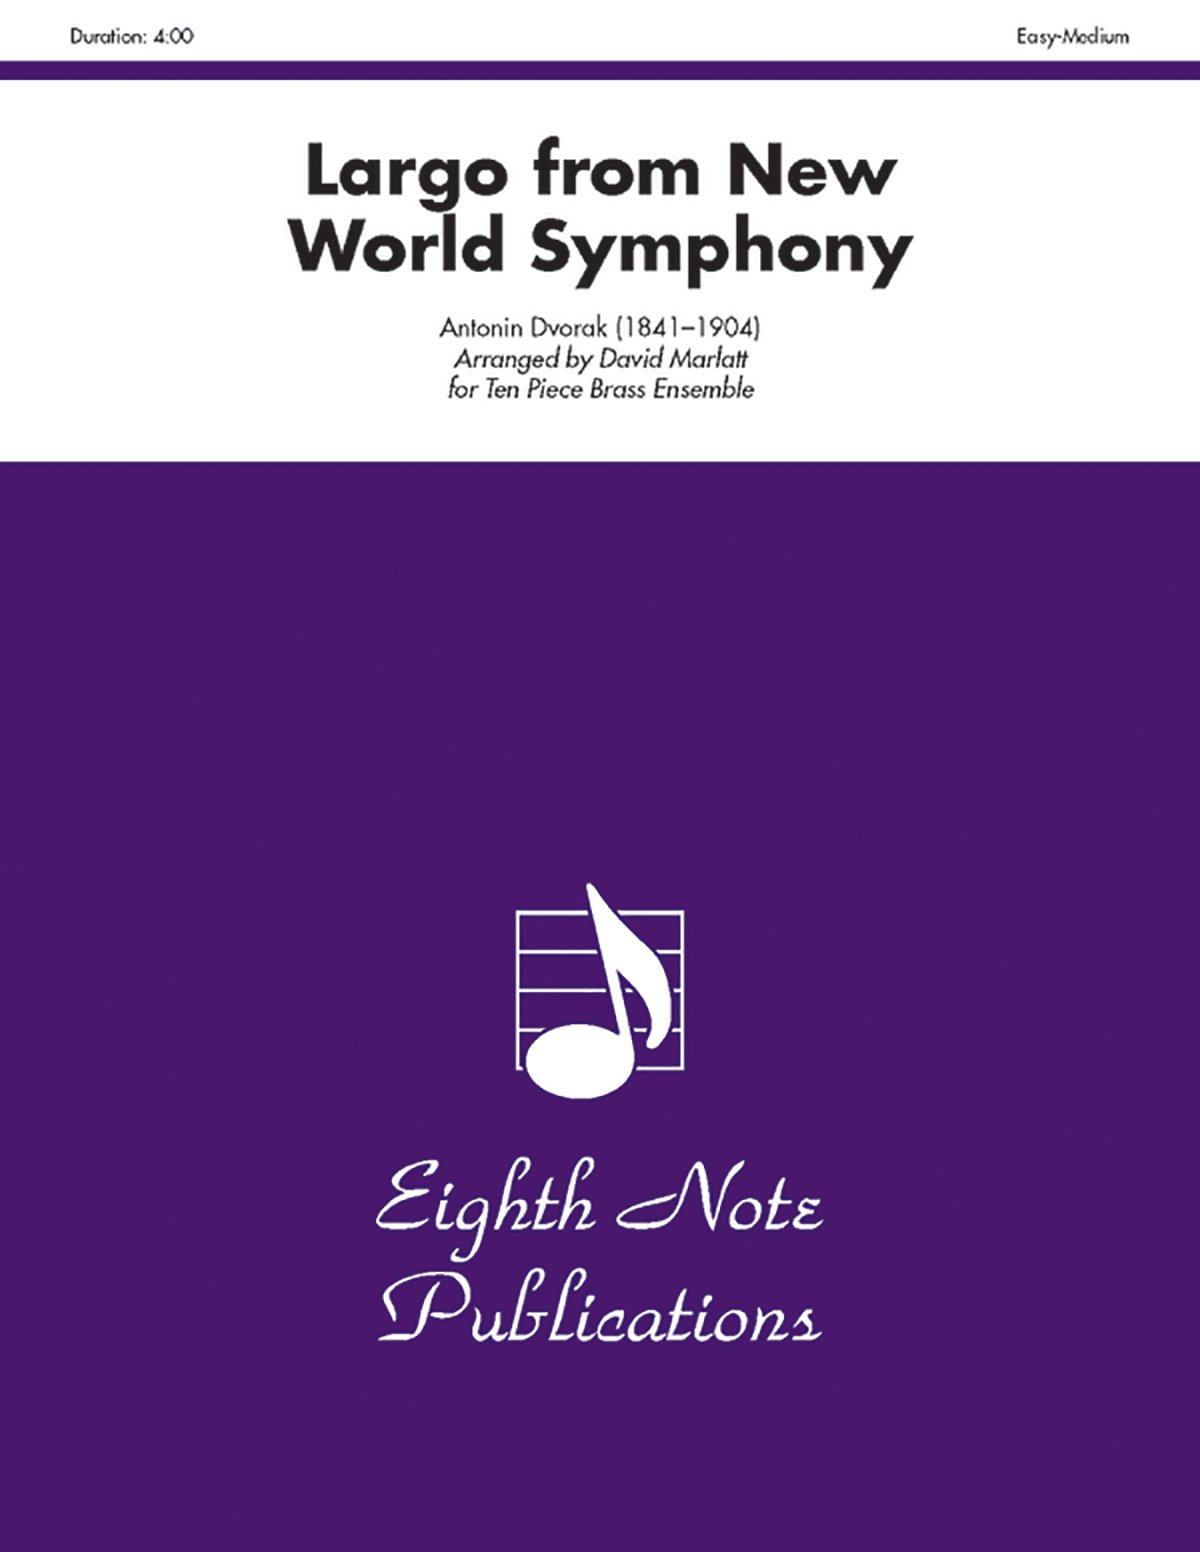 Download Largo (from New World Symphony): Score & Parts (Eighth Note Publications) pdf epub